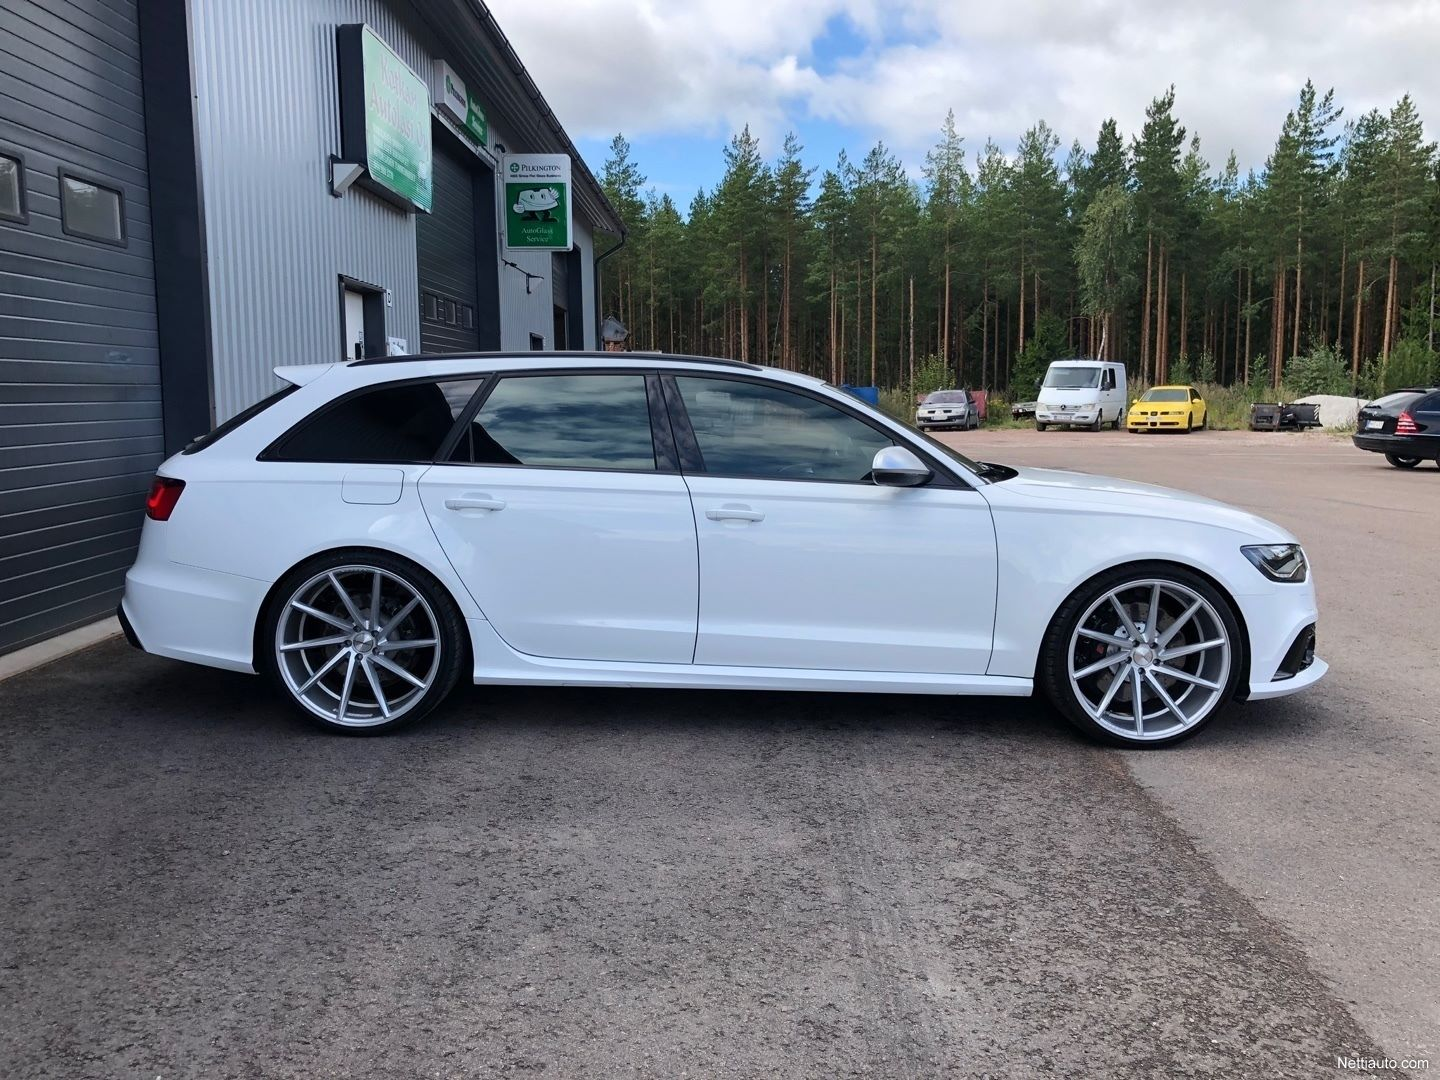 Audi-RS6-Avant-Kimi-Raikkonen-for-sale-2